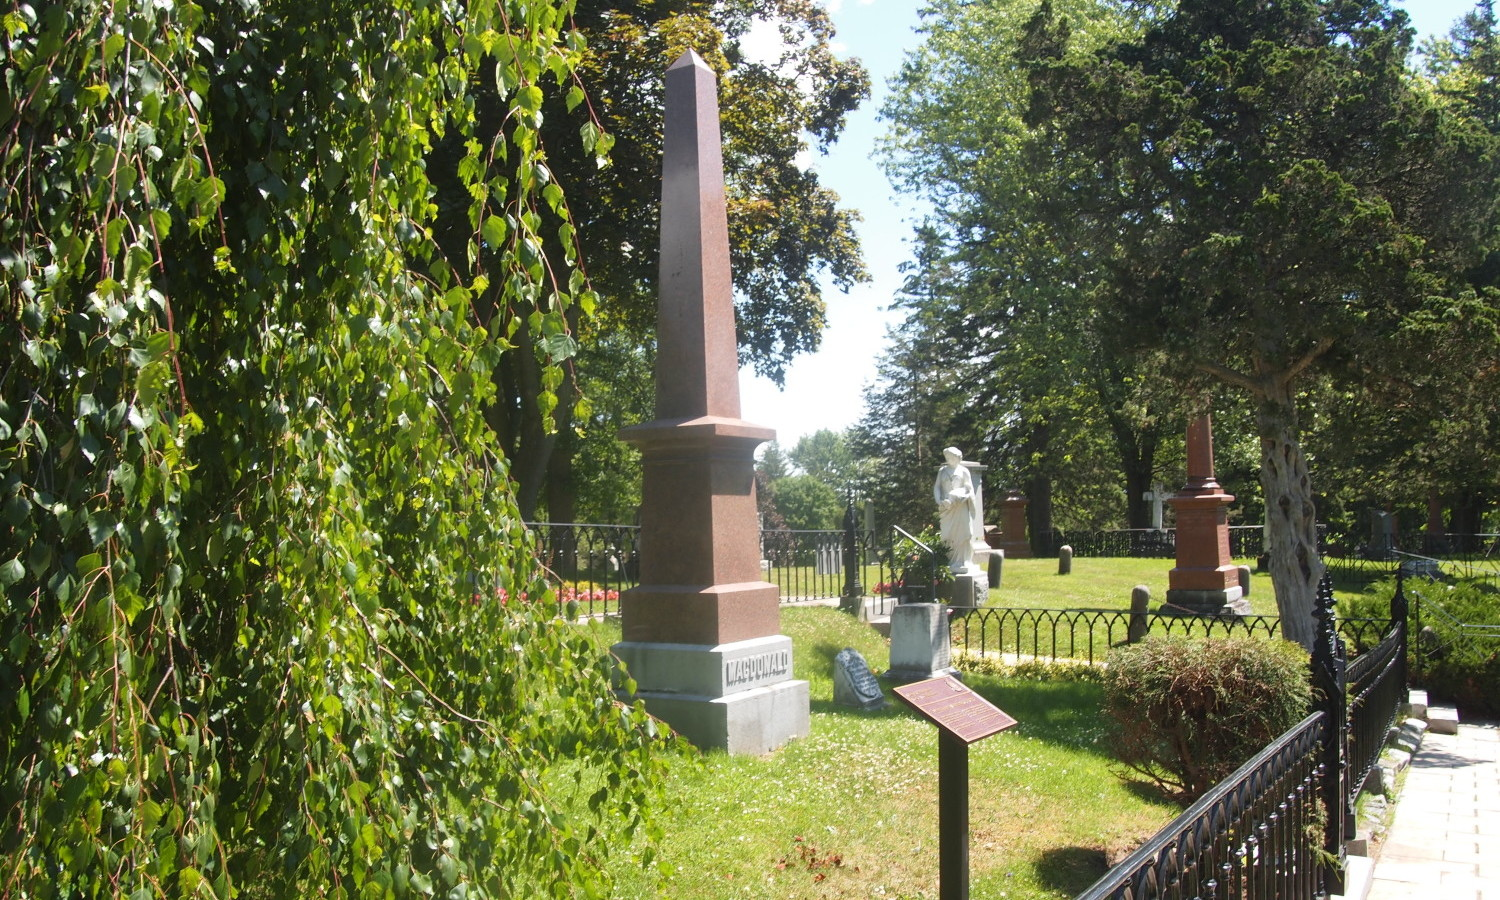 The grave marker of Sir John A. Macdonald